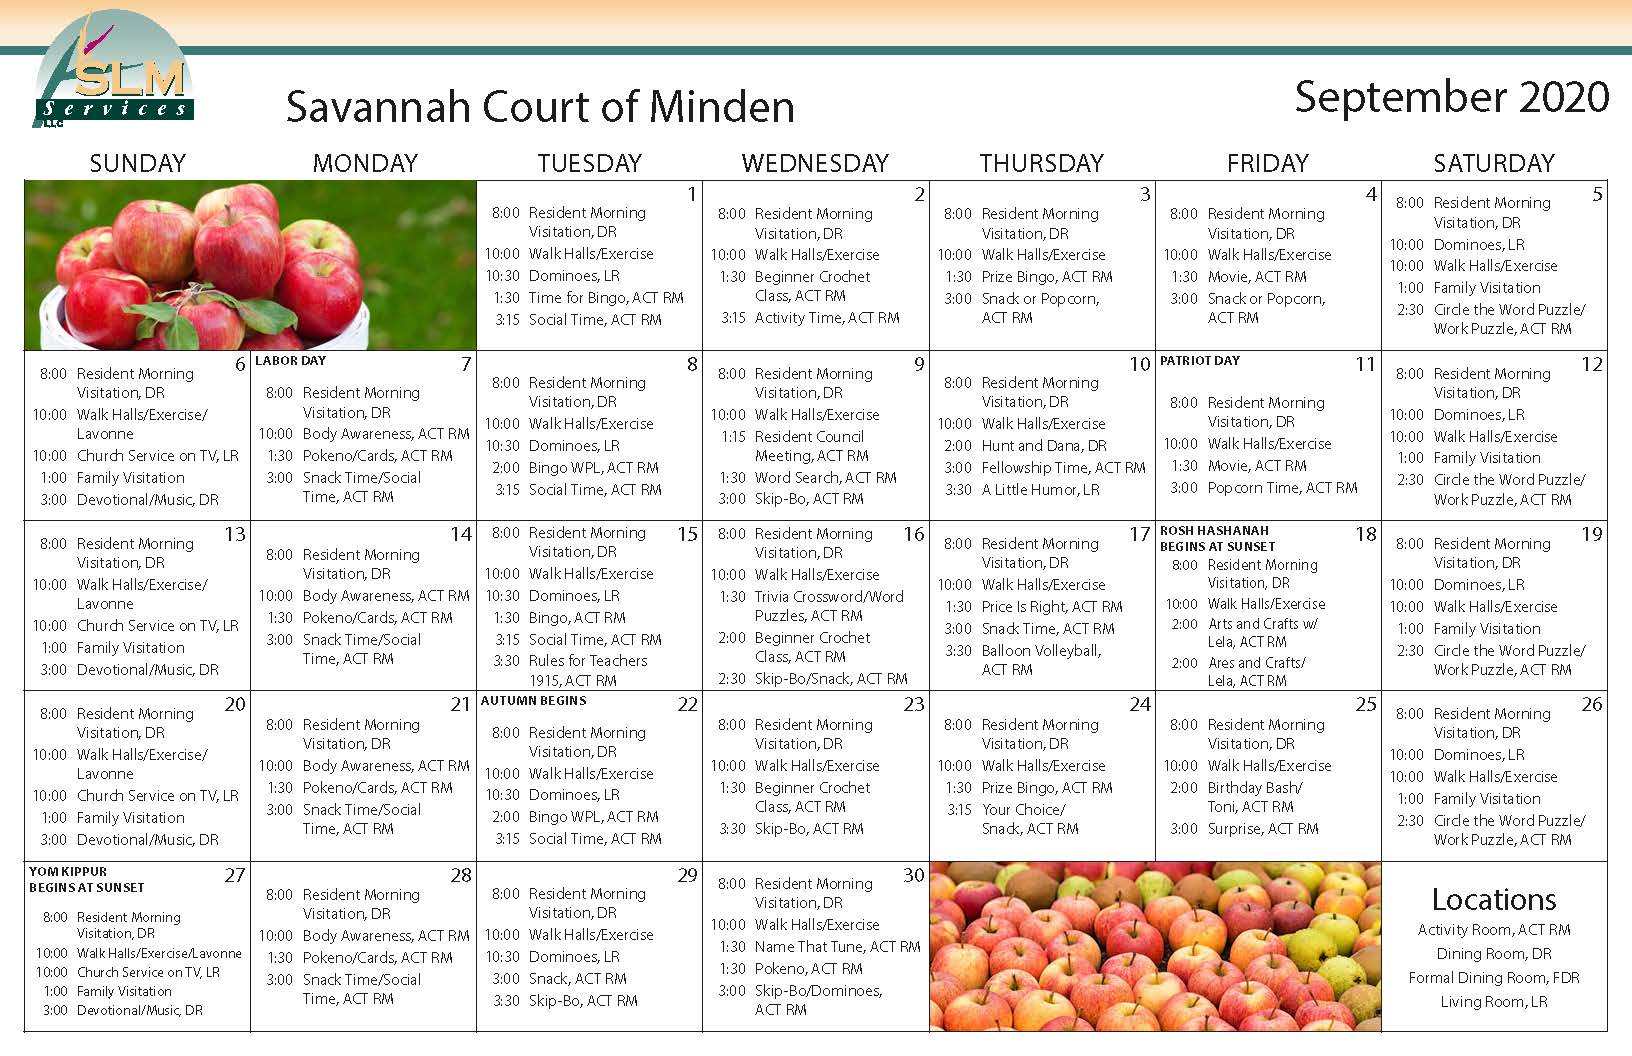 View our monthly calendar of events at Savannah Court of Minden